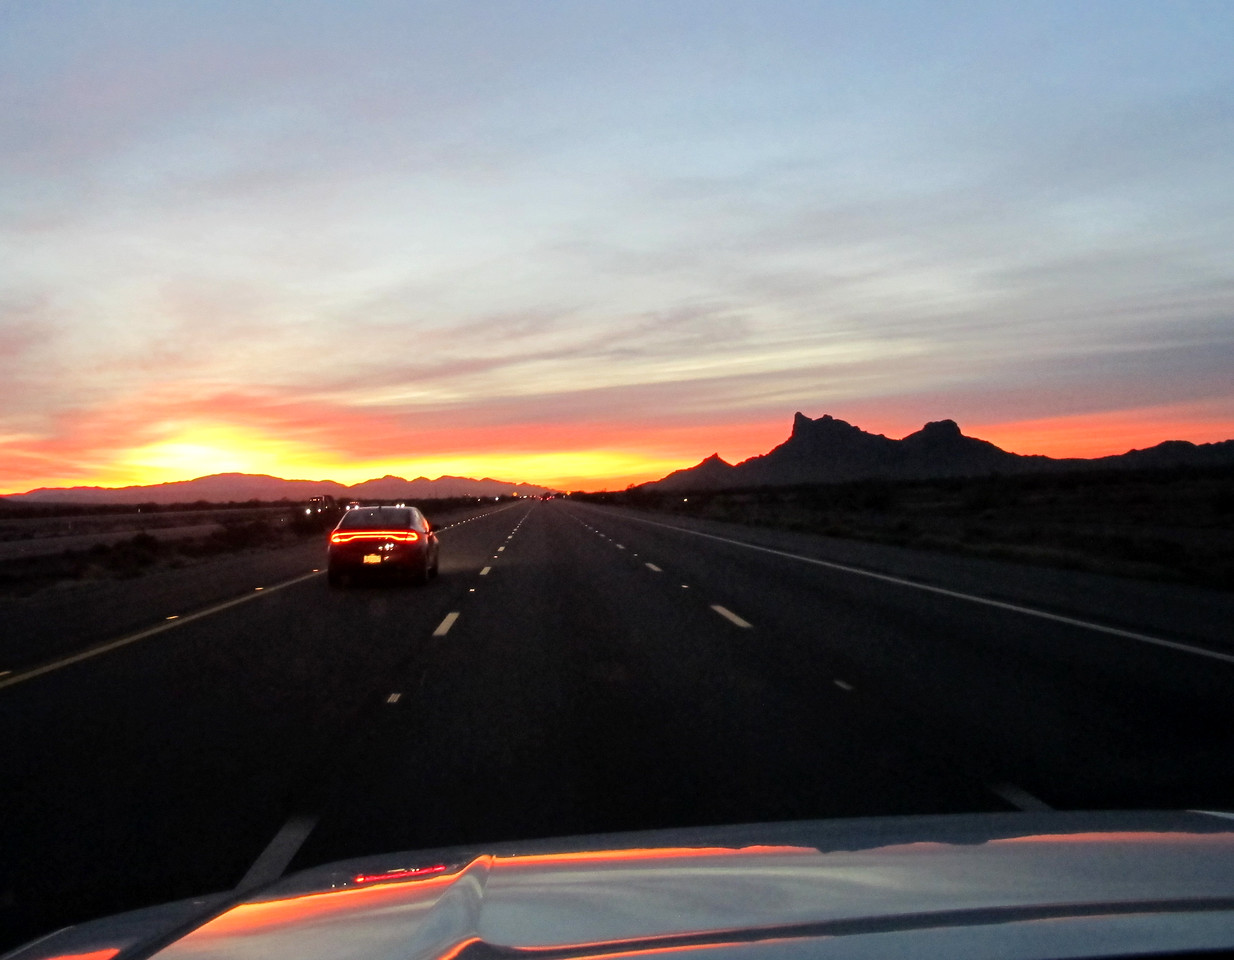 Leaving Phoenix at the crack of dawn, eastbound on I-10 near Picacho Peak State Park (on right).